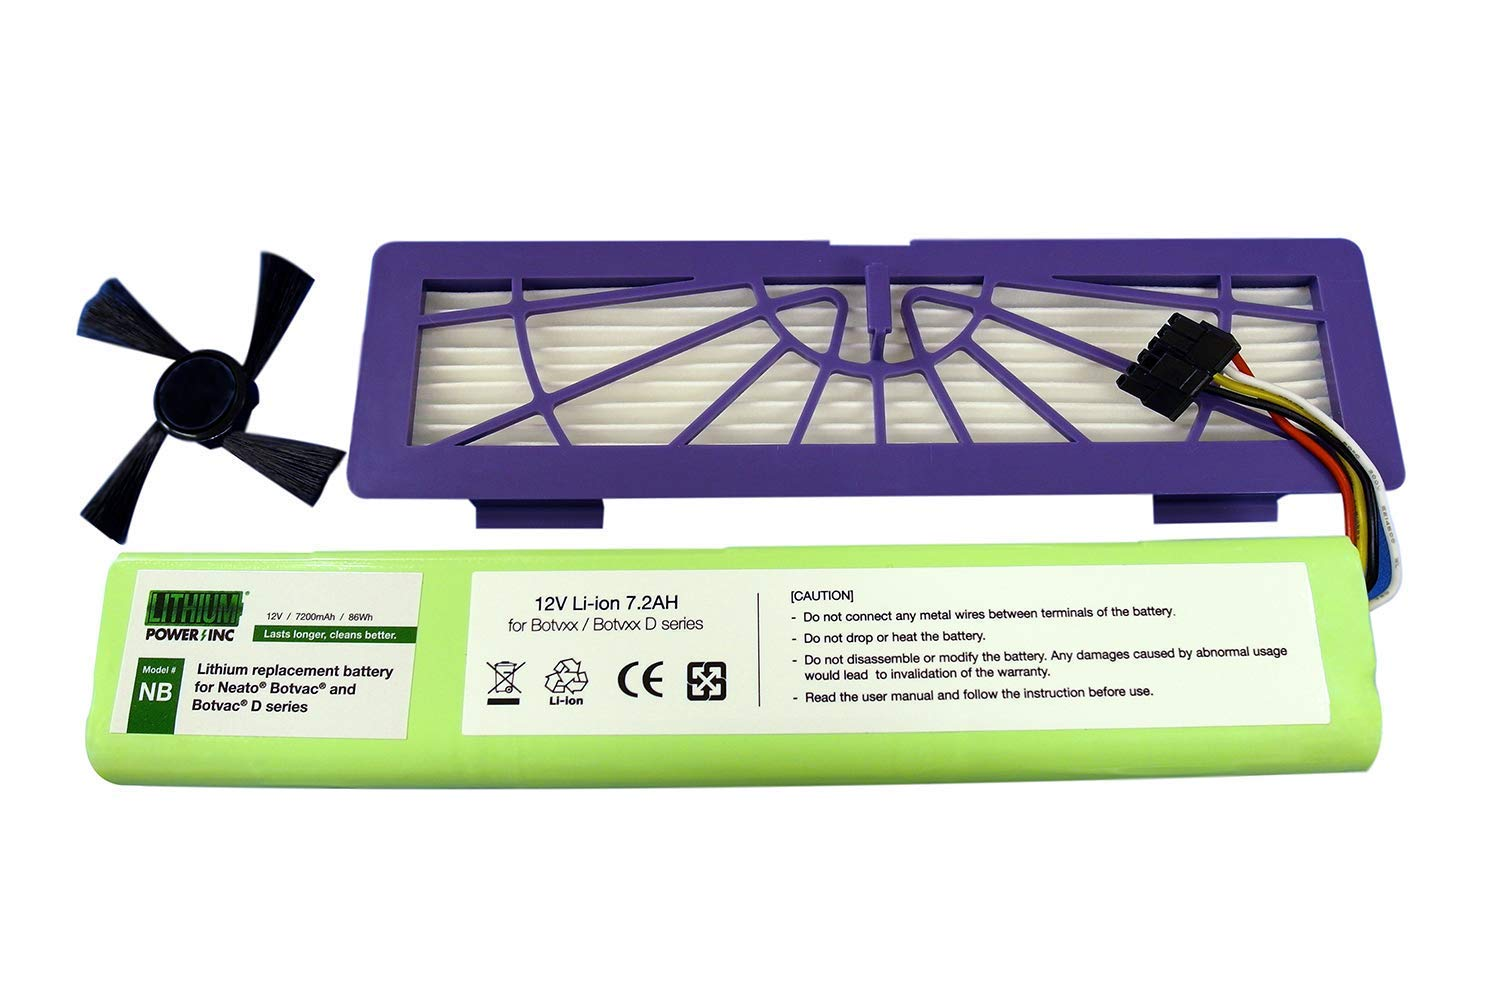 Lithium Neato Replacement Battery for Neato Botvac 70e, 75, 80, 85 and Botvac D75, D80, D85 Series, 7200mAh (Side Brush and HEPA Filter Included) - Botvac Connected Series not Supported by Lithium Power